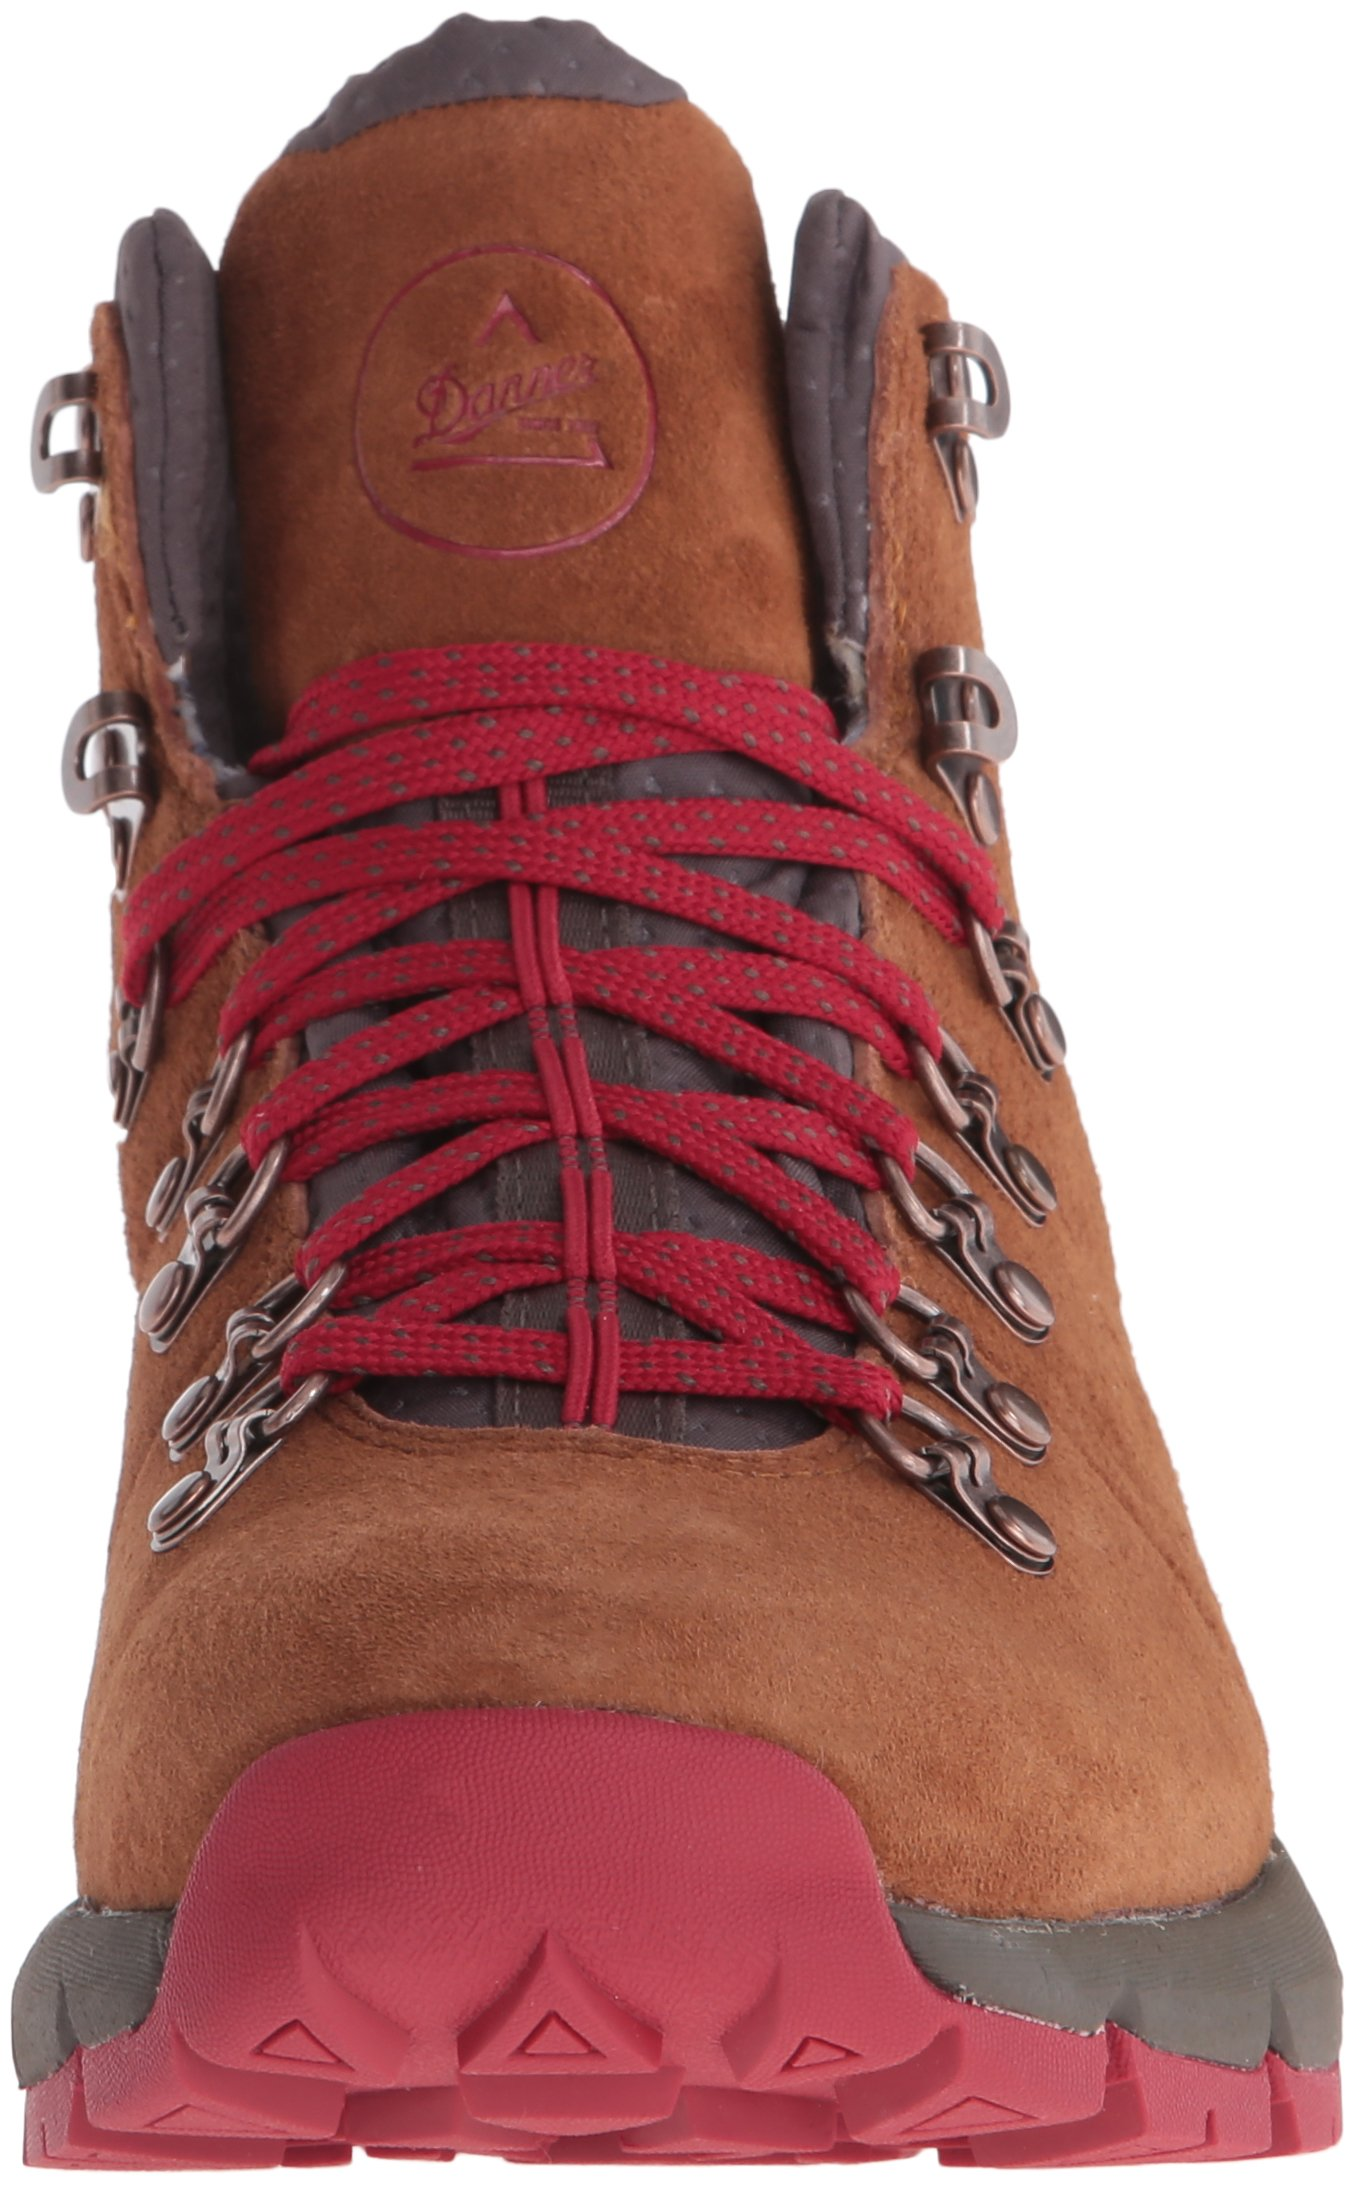 Danner Women's Mountain 600 4.5'' Hiking Boot, Brown/Red, 8.5 M US by Danner (Image #4)